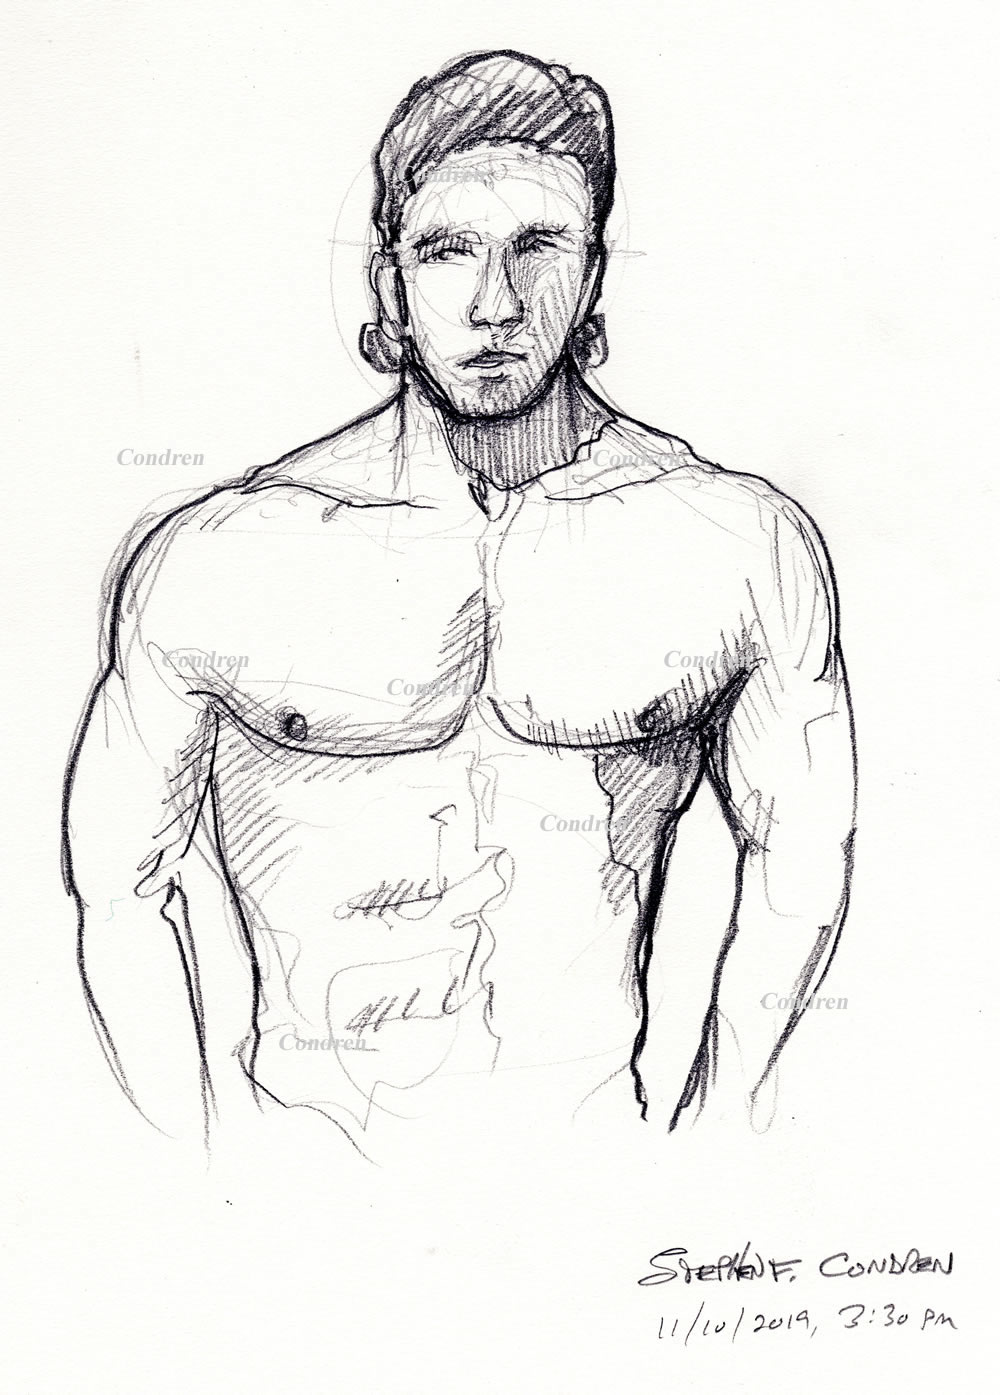 Pencil drawing of a shirtless male by artist Stephen F. Condren.